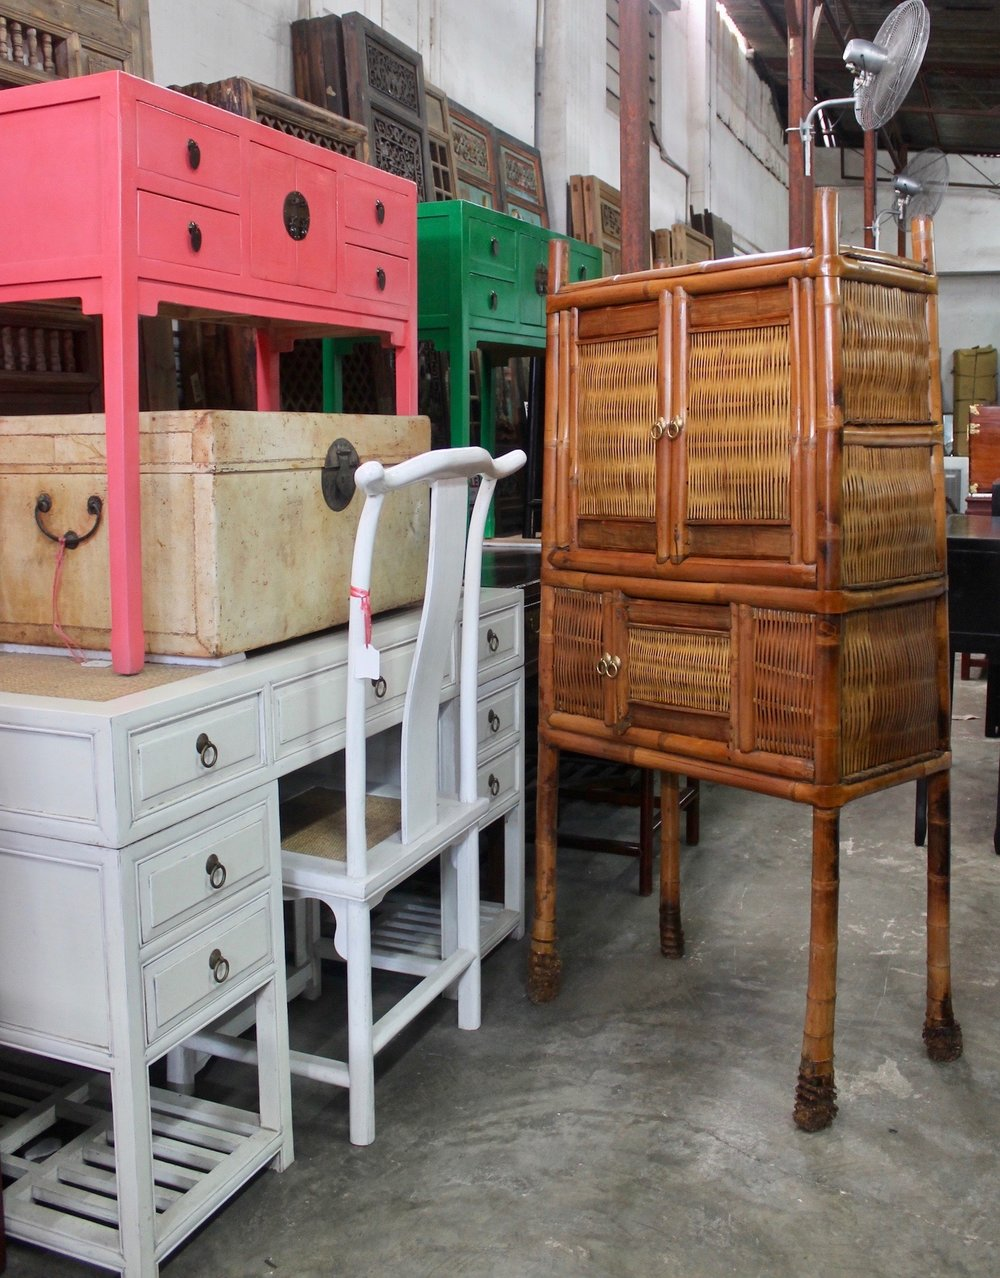 Left: colourful tables (repro); right: vintage Bamboo cabinet from Southern China